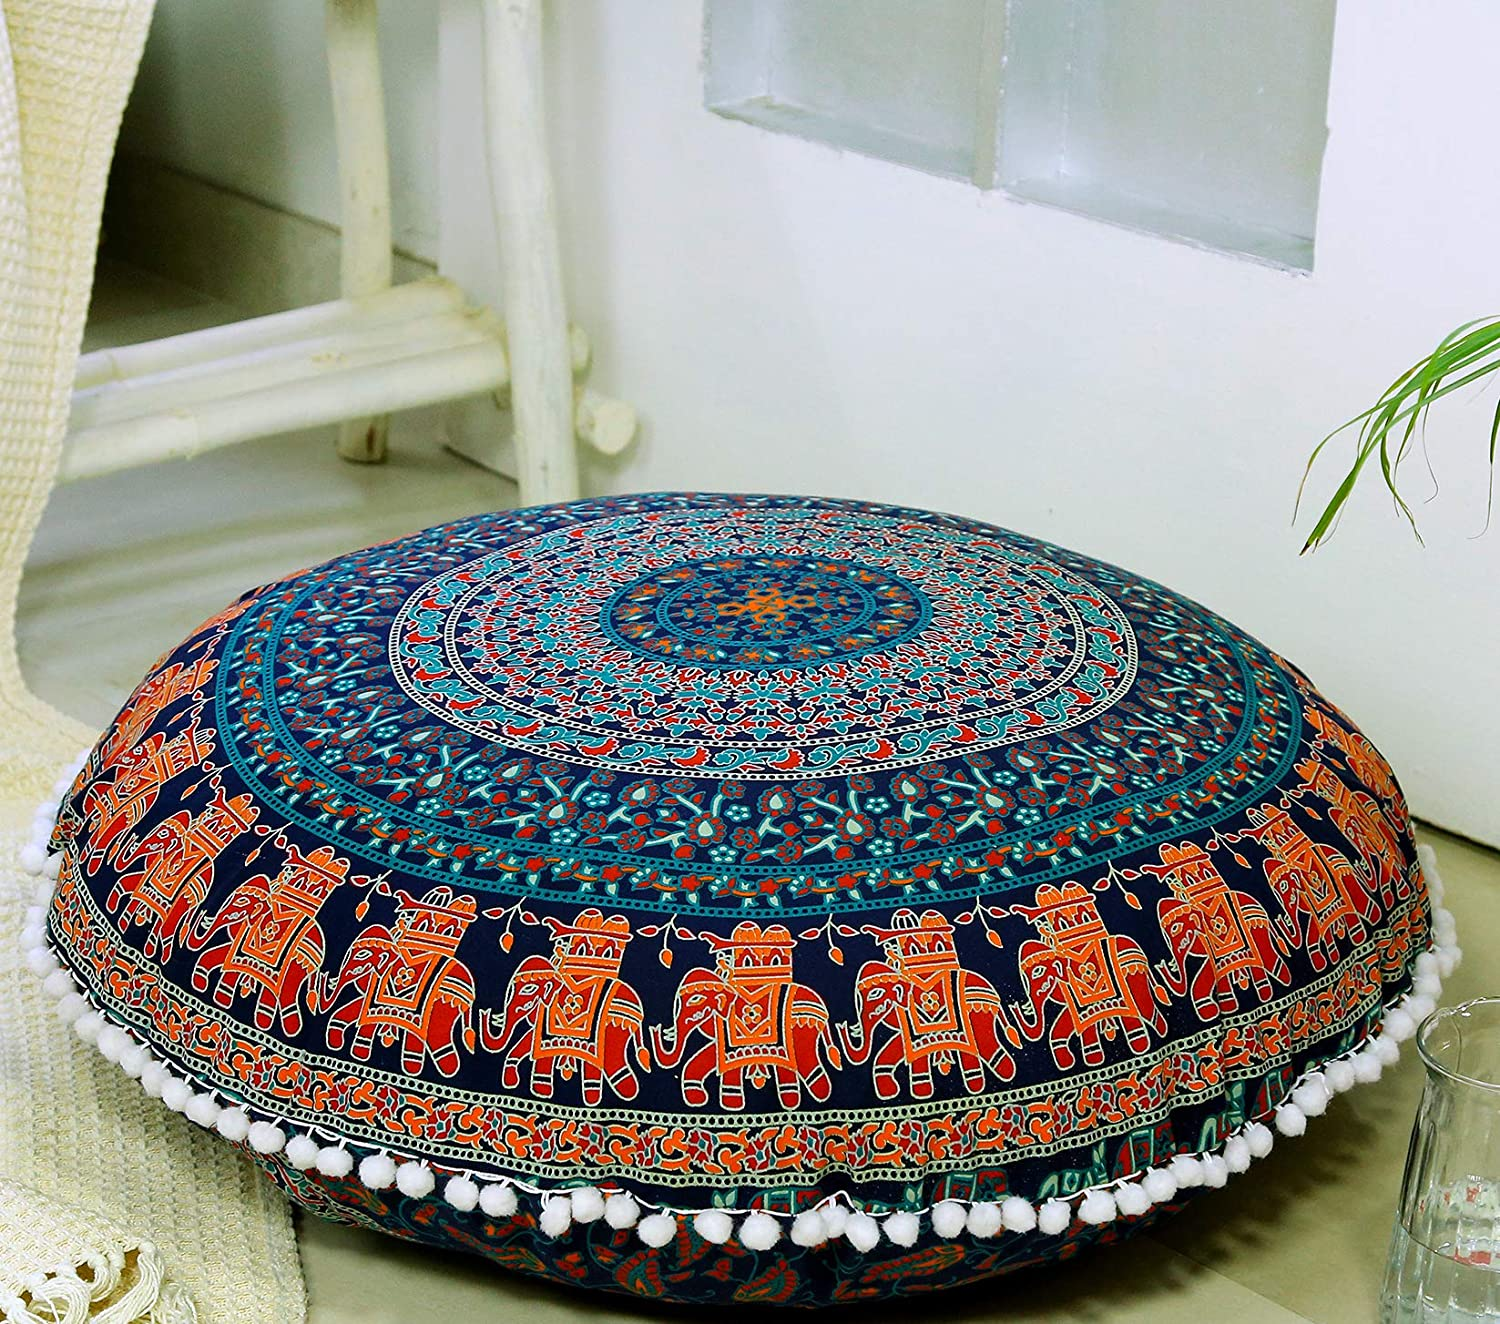 "Popular Handicrafts Large Hippie Mandala Floor Pillow Cover - Cushion Cover - Pouf Cover Round Bohemian Yoga Decor Floor Cushion Case- 32"" Blue"